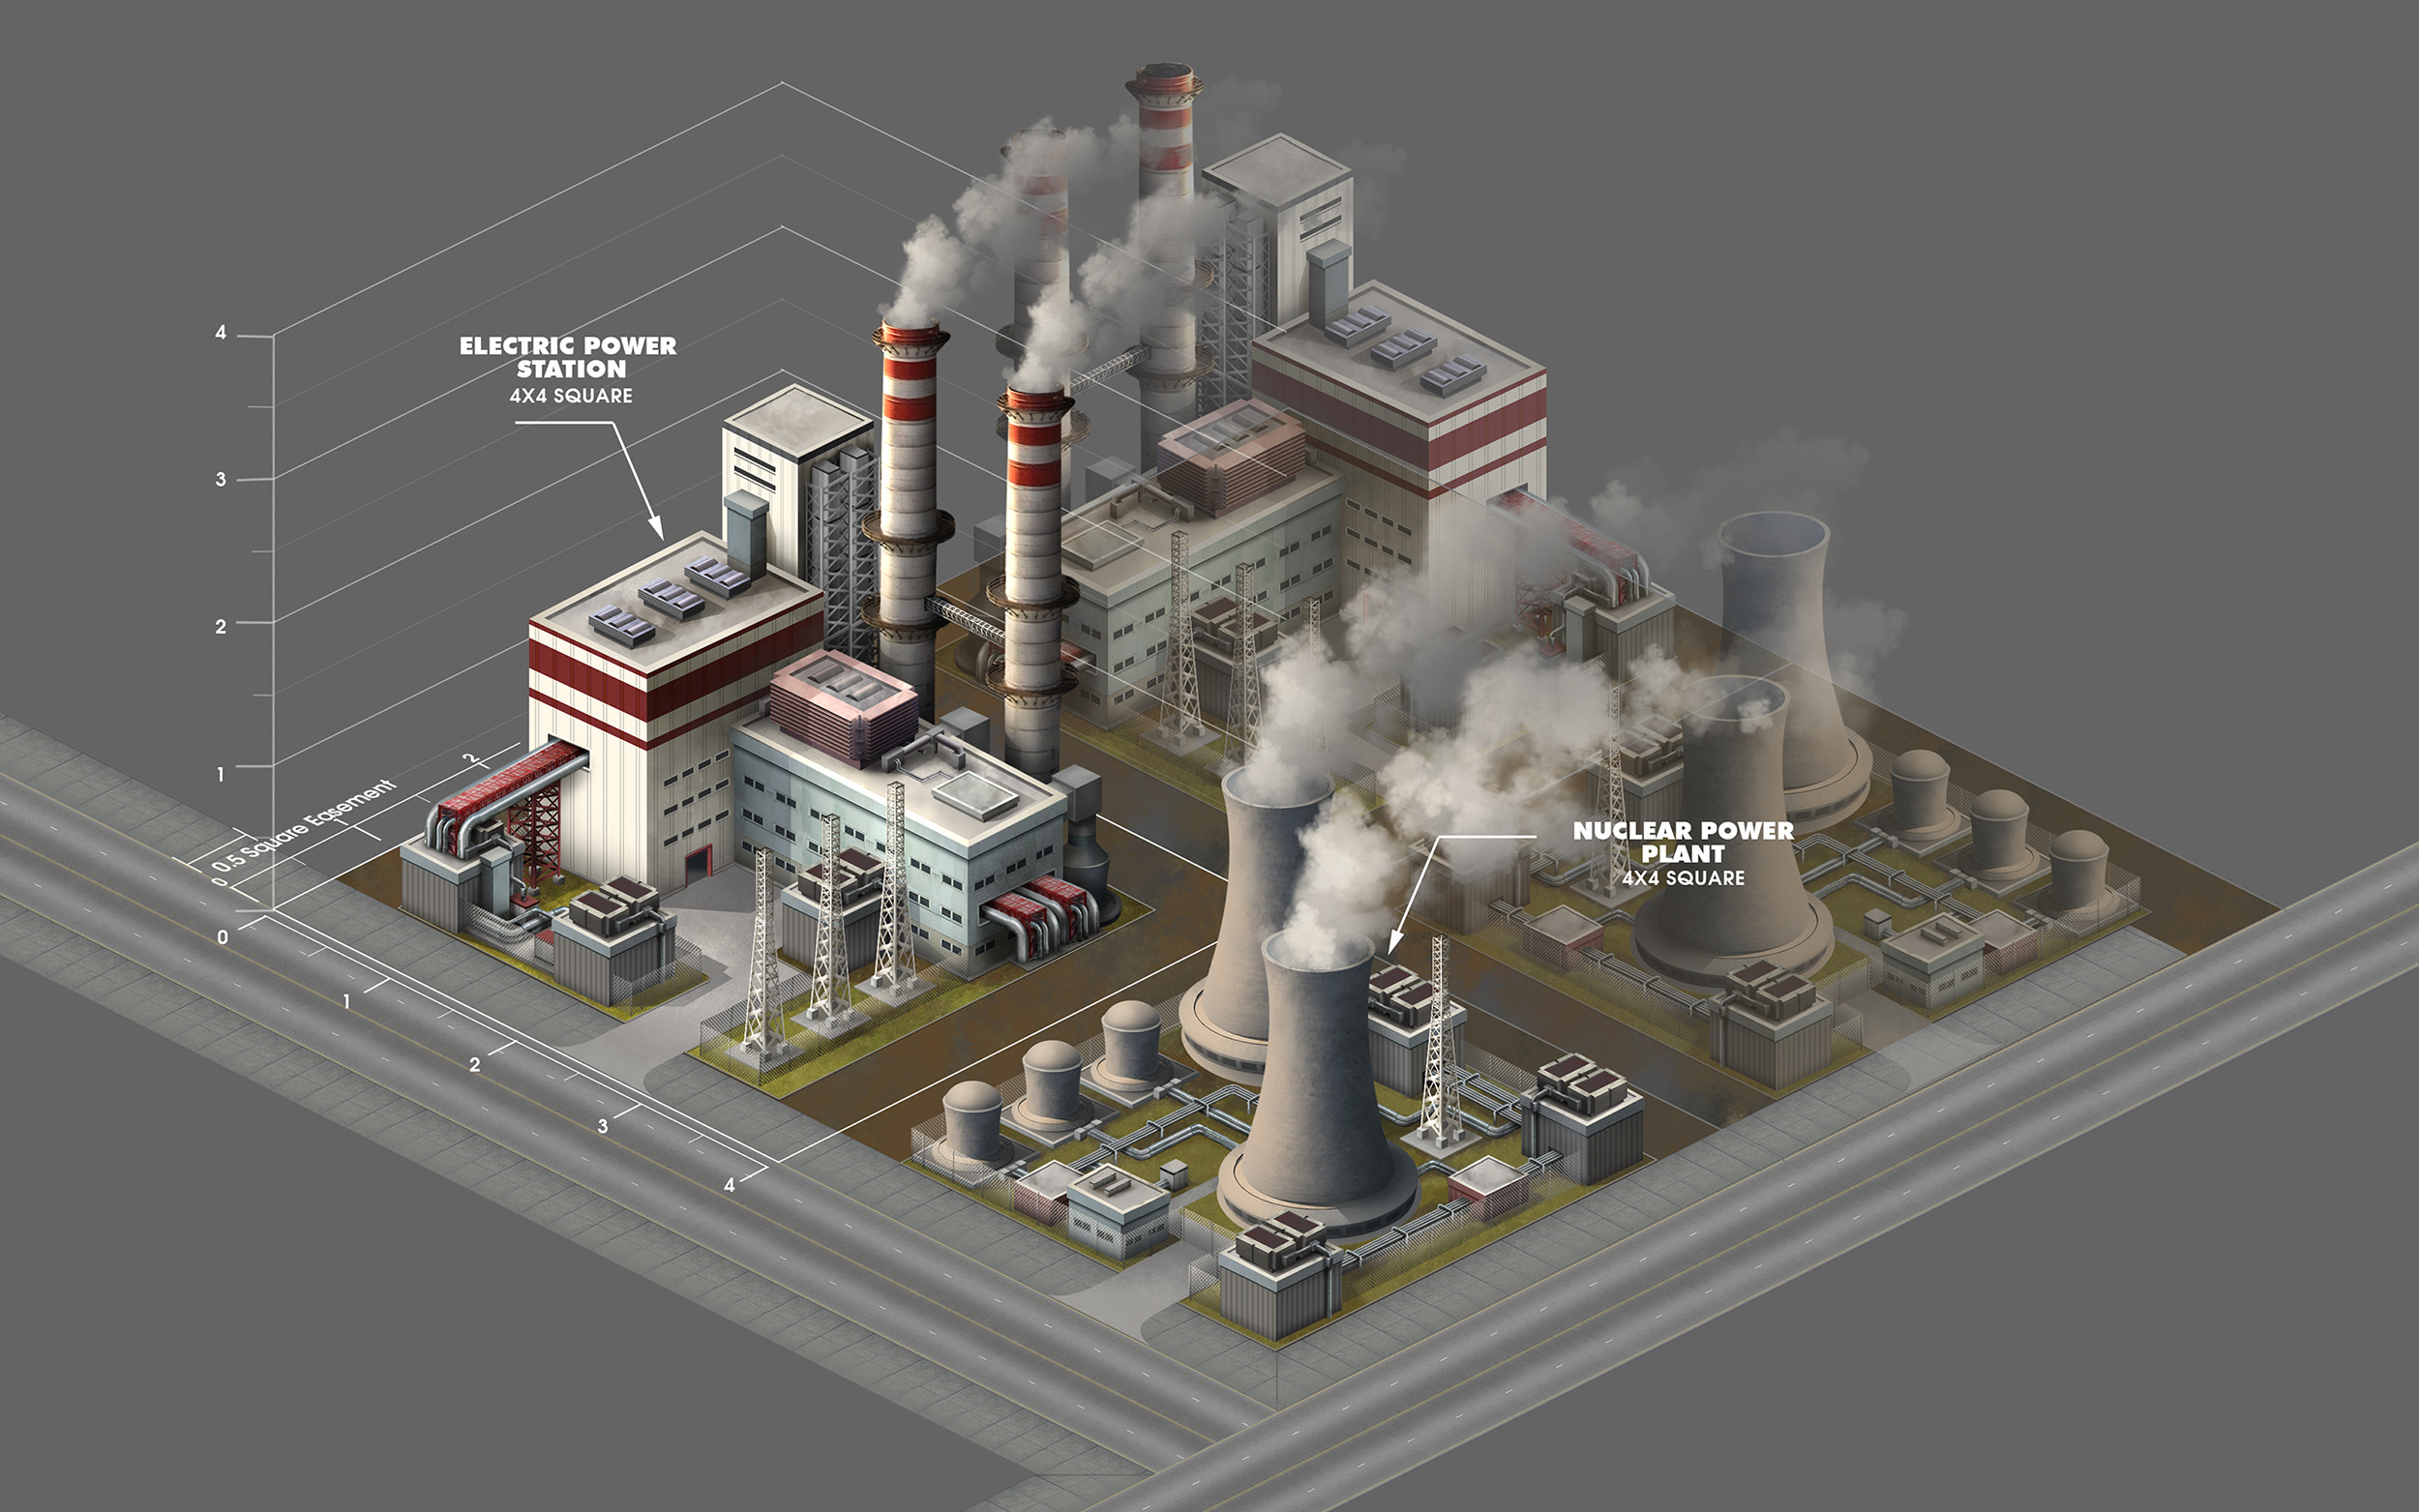 Power plant structures